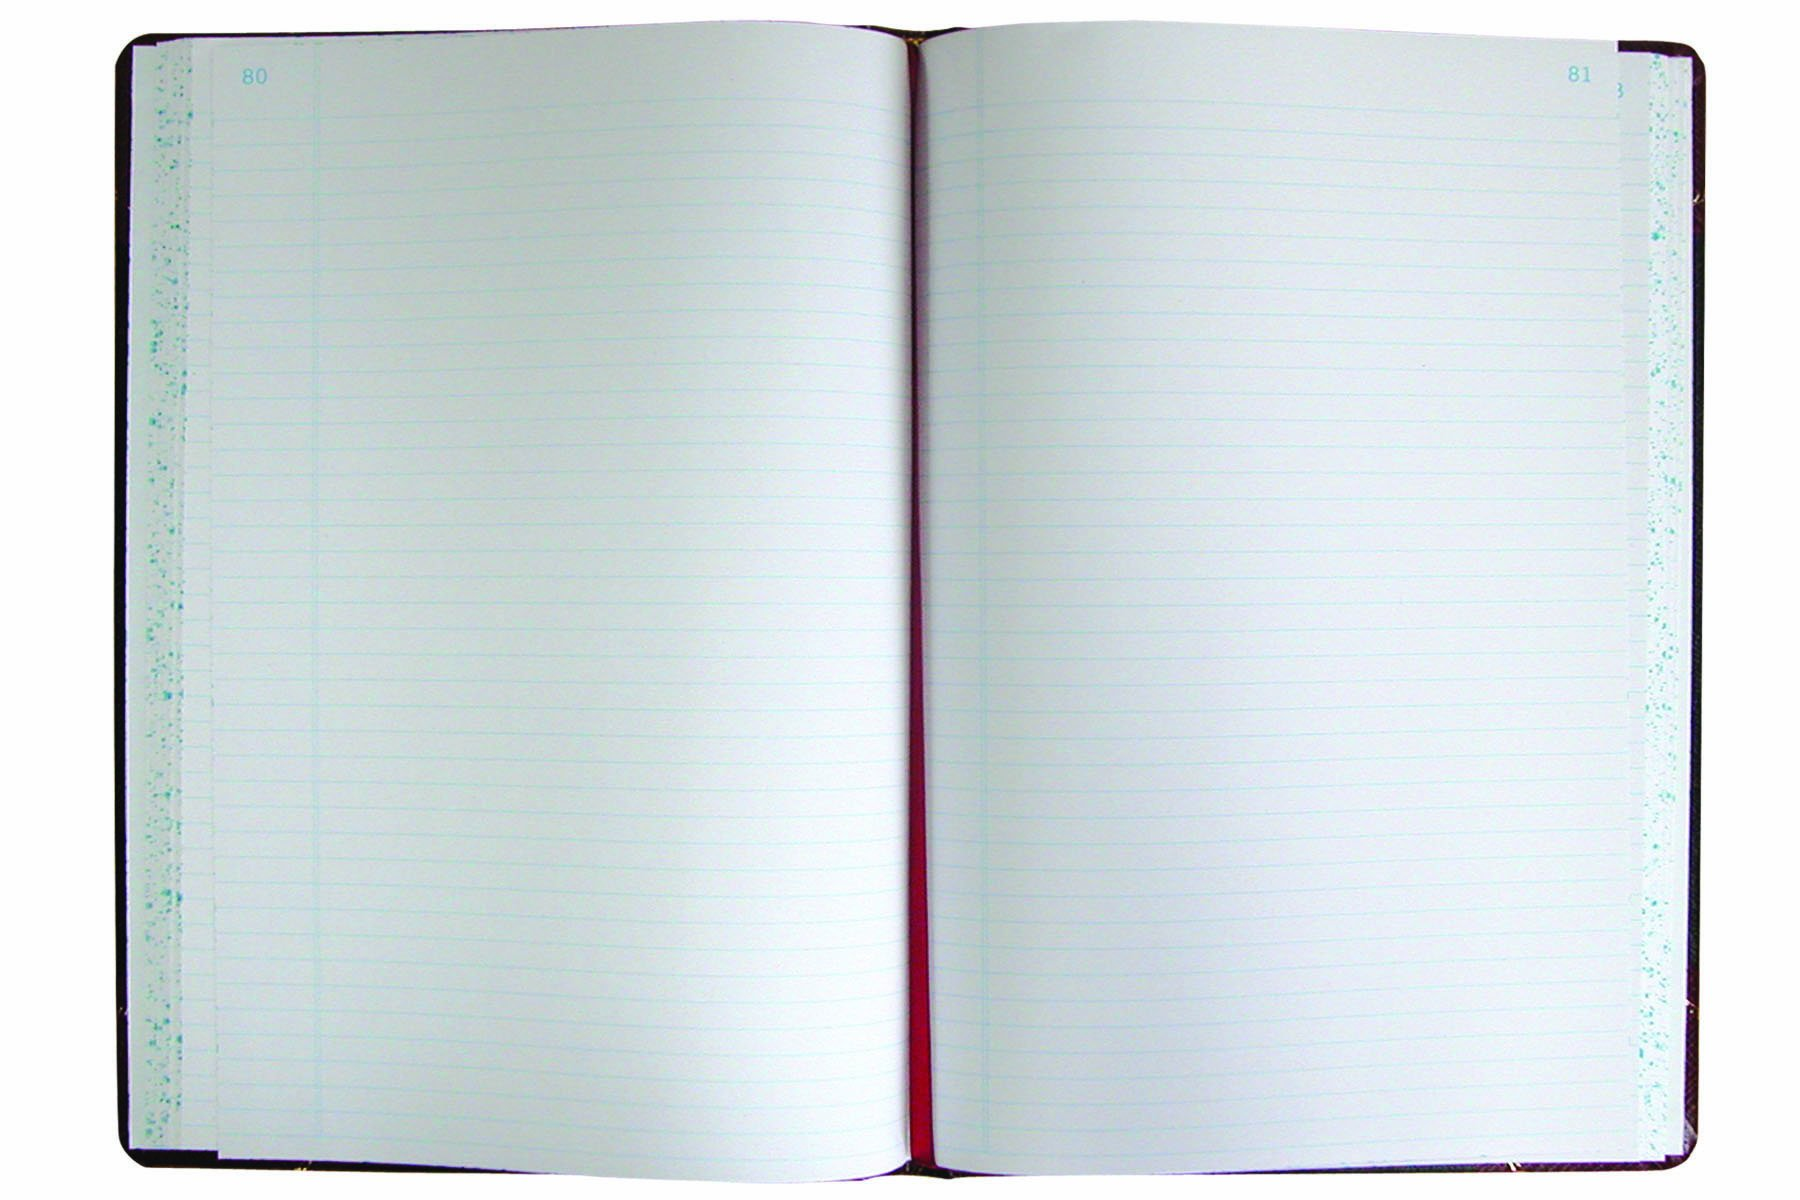 National Brand Record Book, Black Ultima, 13.75 x 8.375 inches, 300 Pages (A9300R)